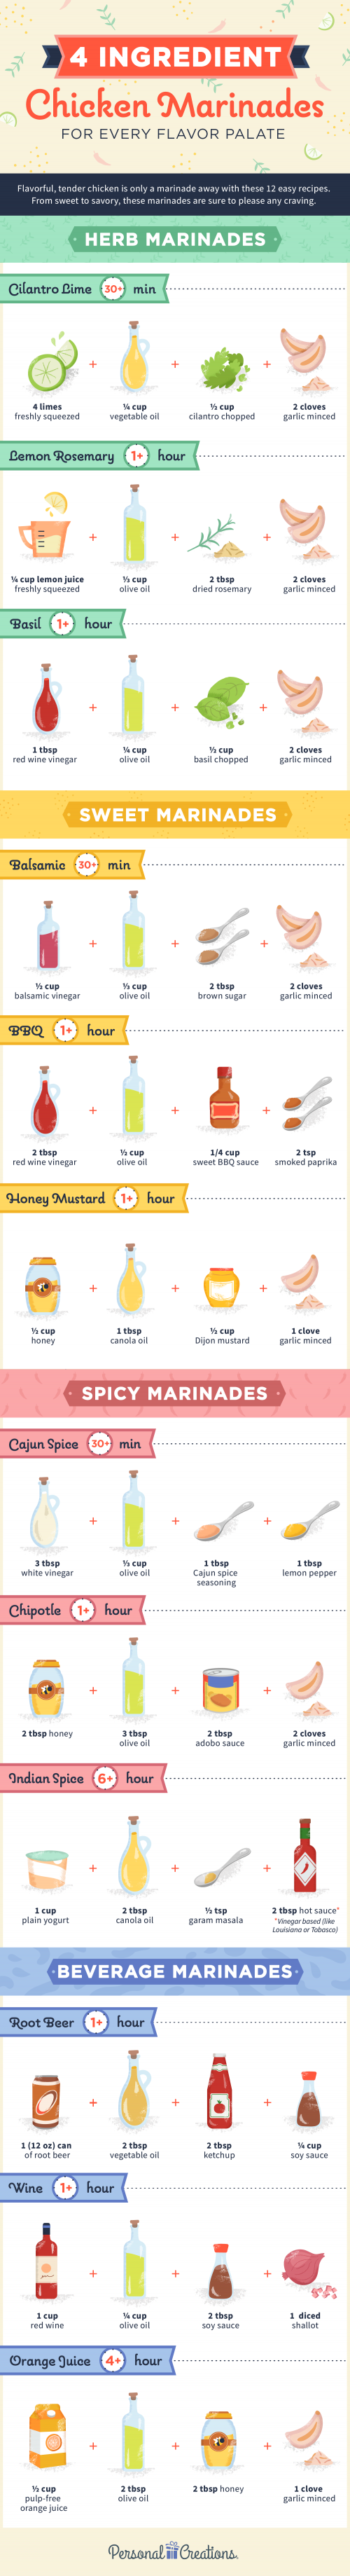 Easy 4 Ingredient Chicken Marinades for tender chicken